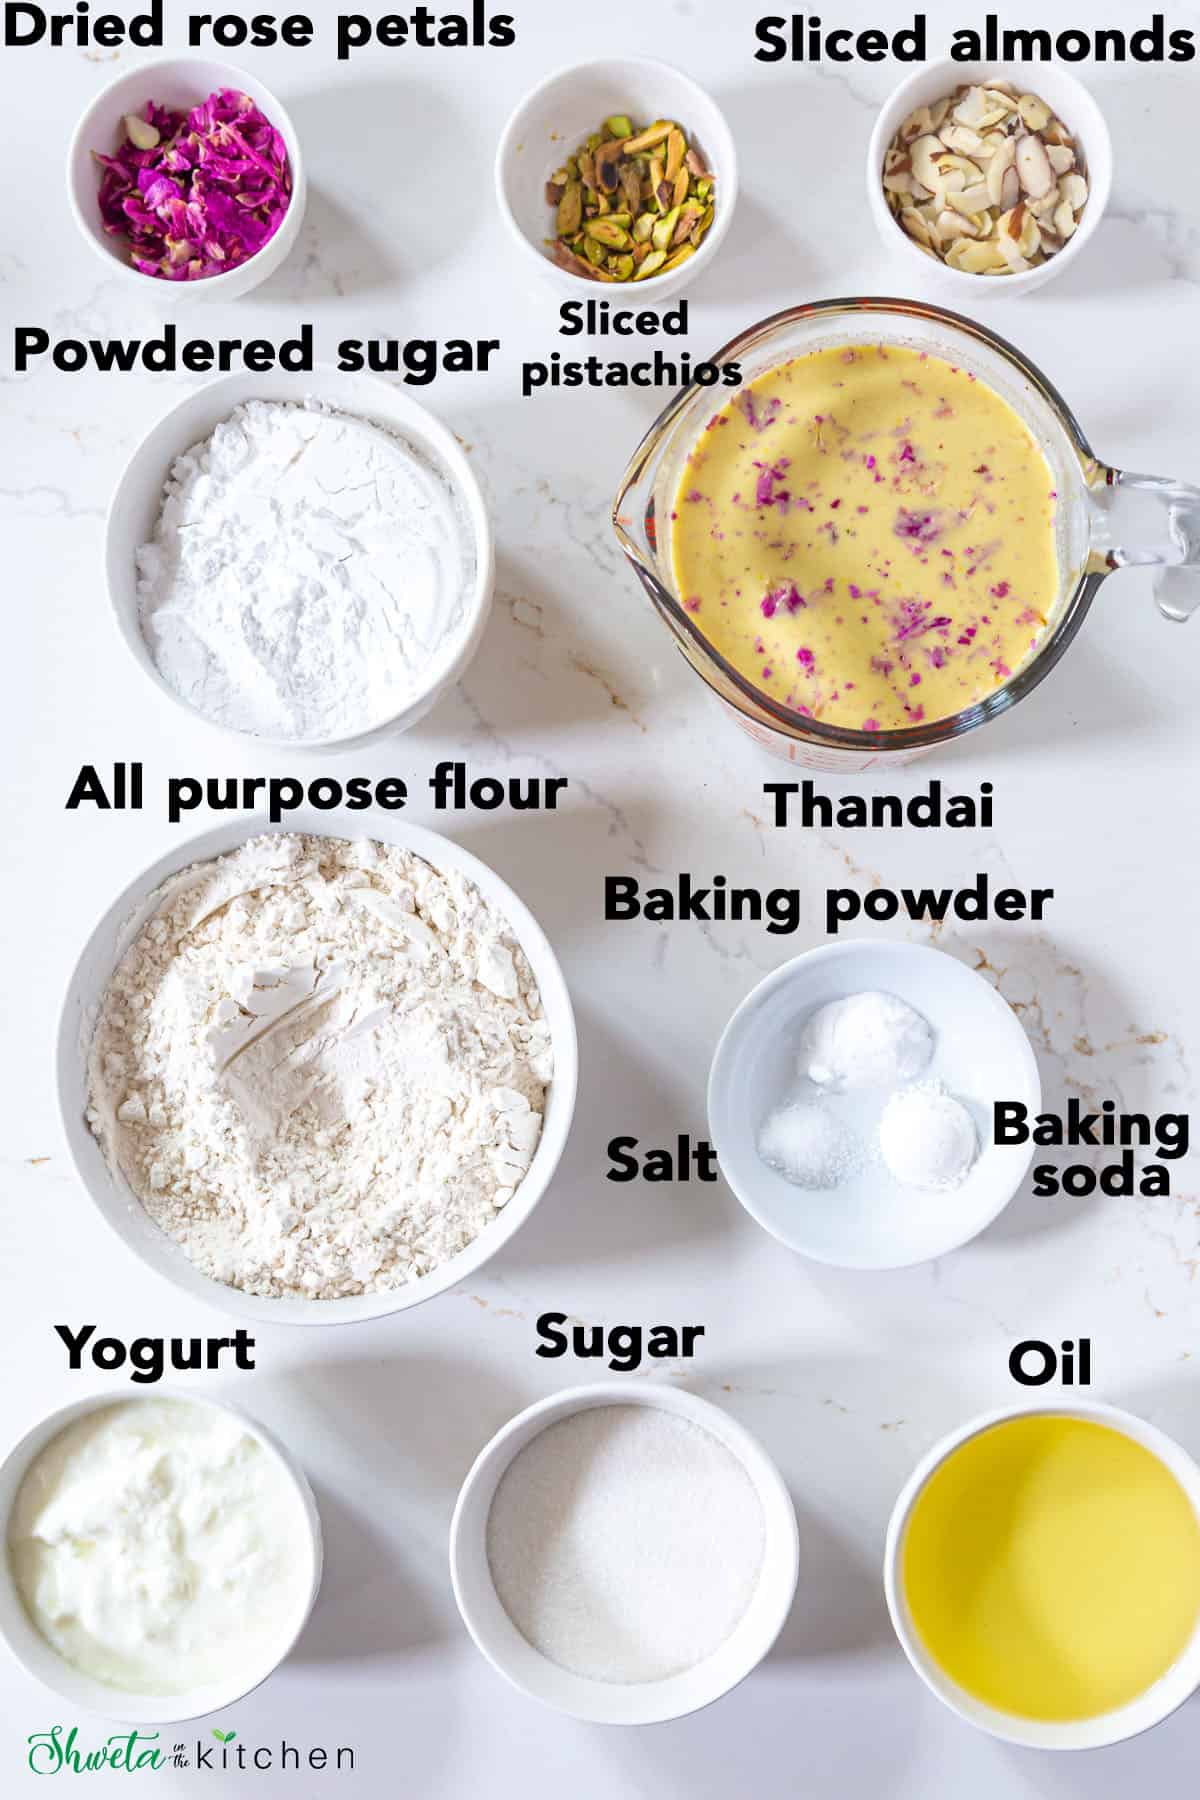 Thandai cake ingredients laid out in bowls on white surface